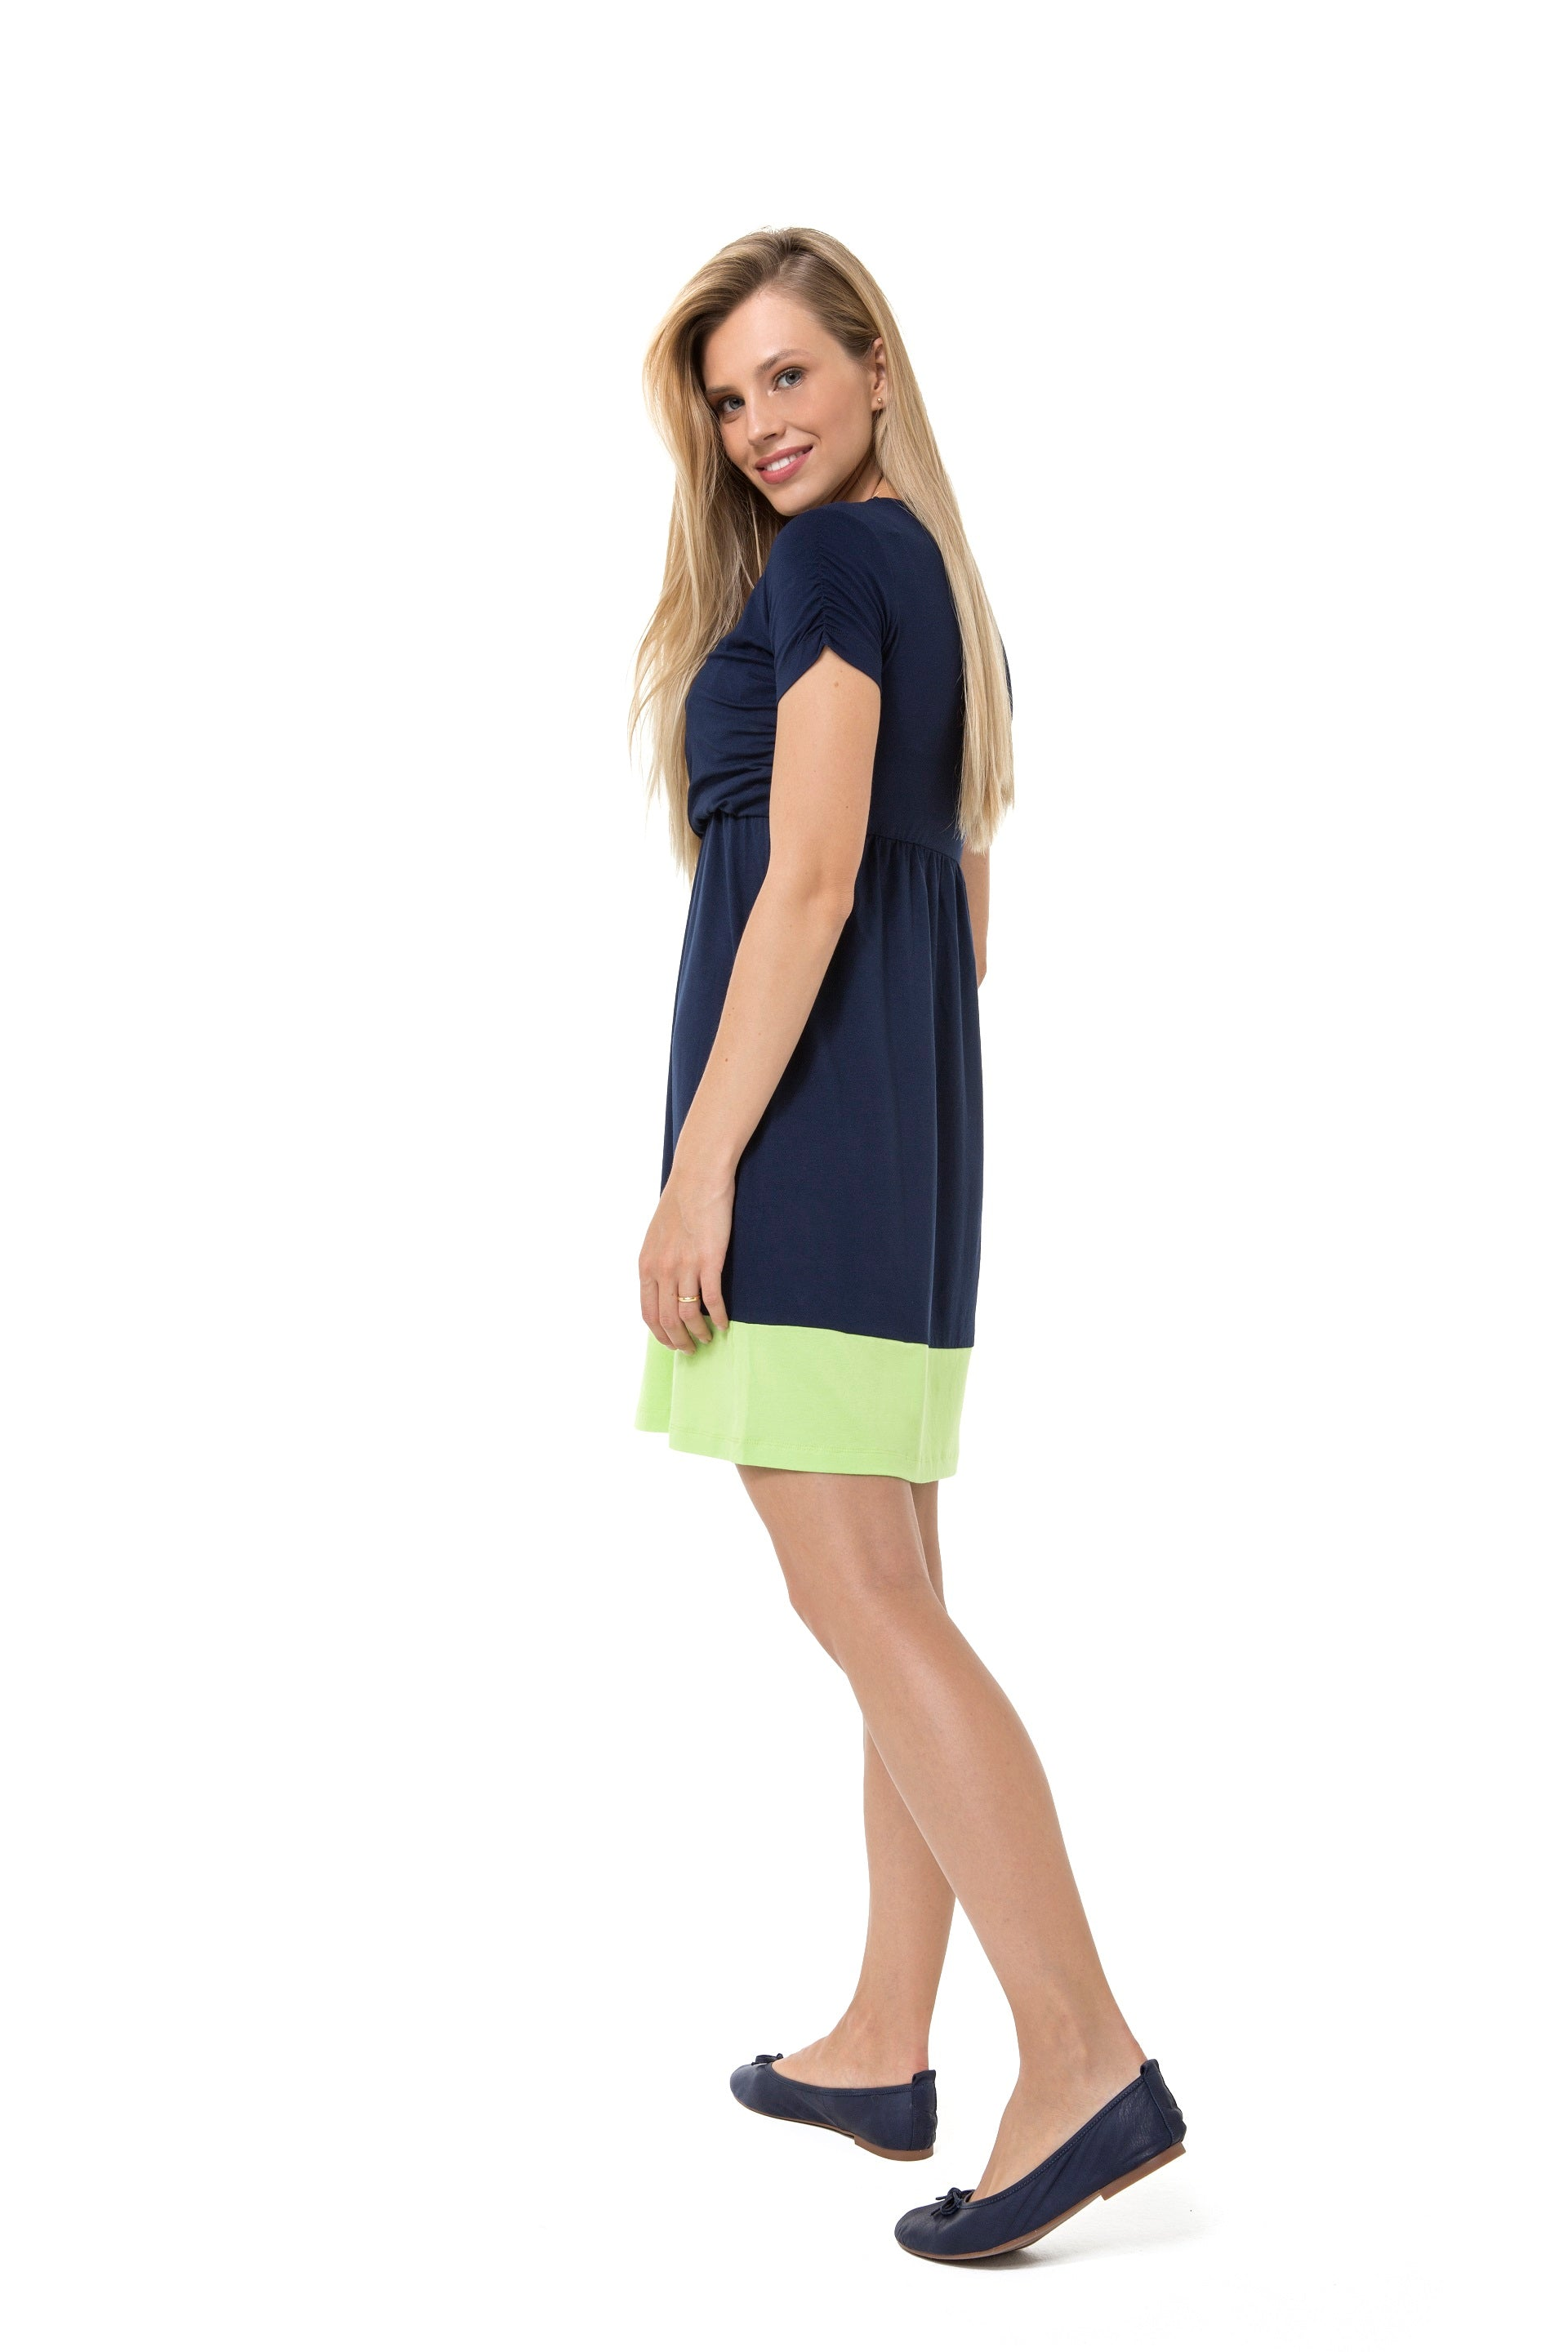 Accouchee Highlight Dress Navy Blue